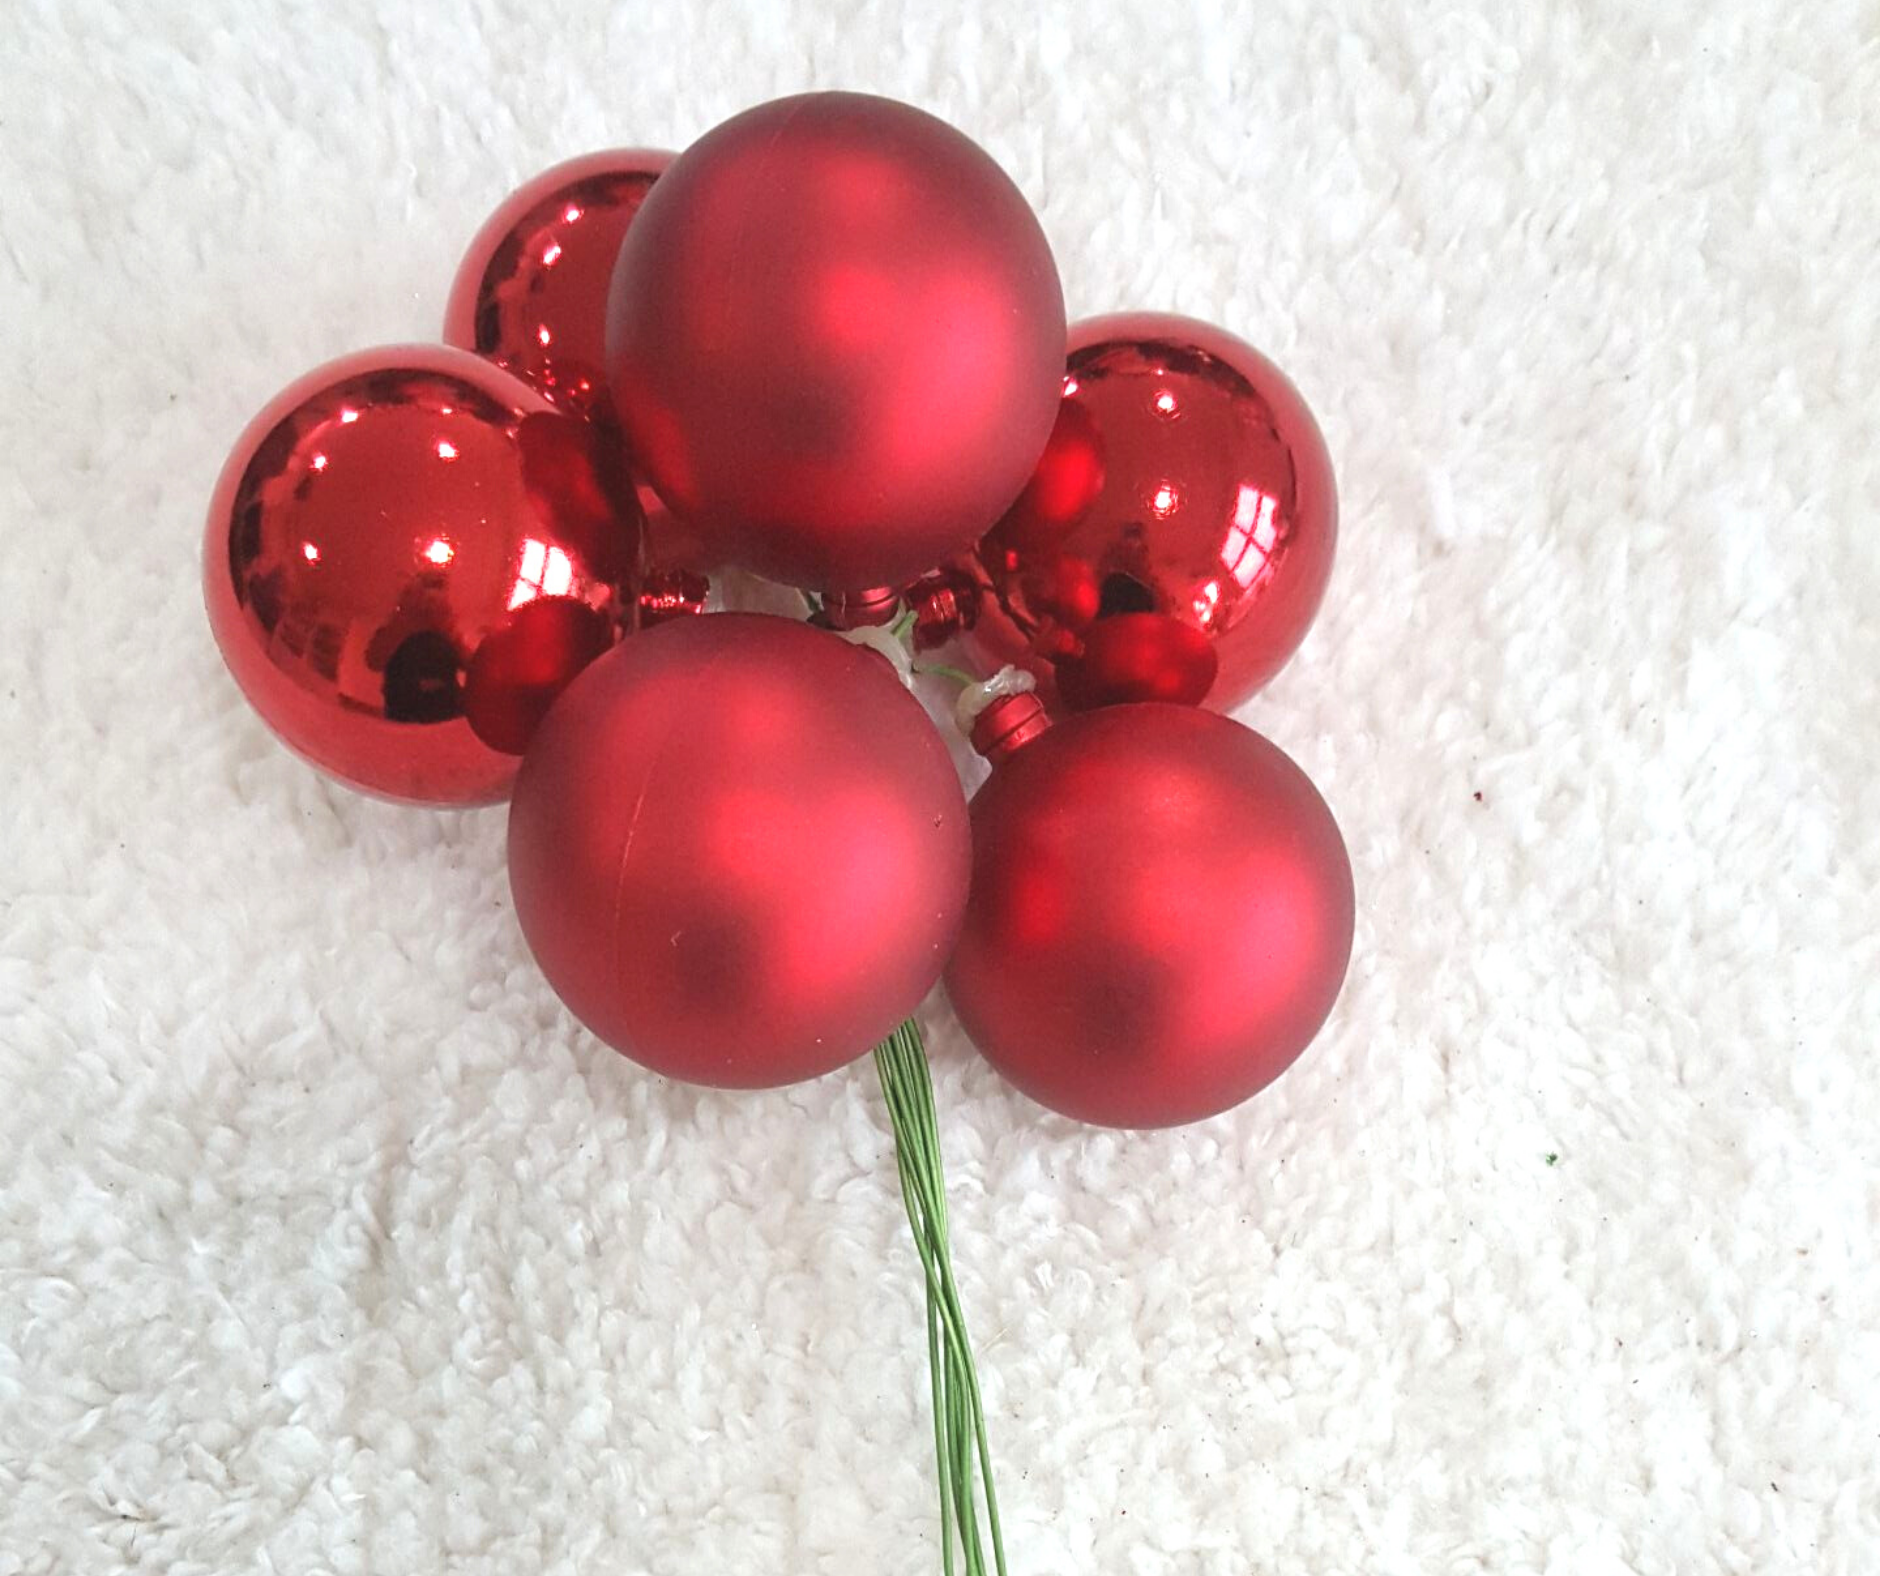 6 in 1 Christmas Ball 40mm